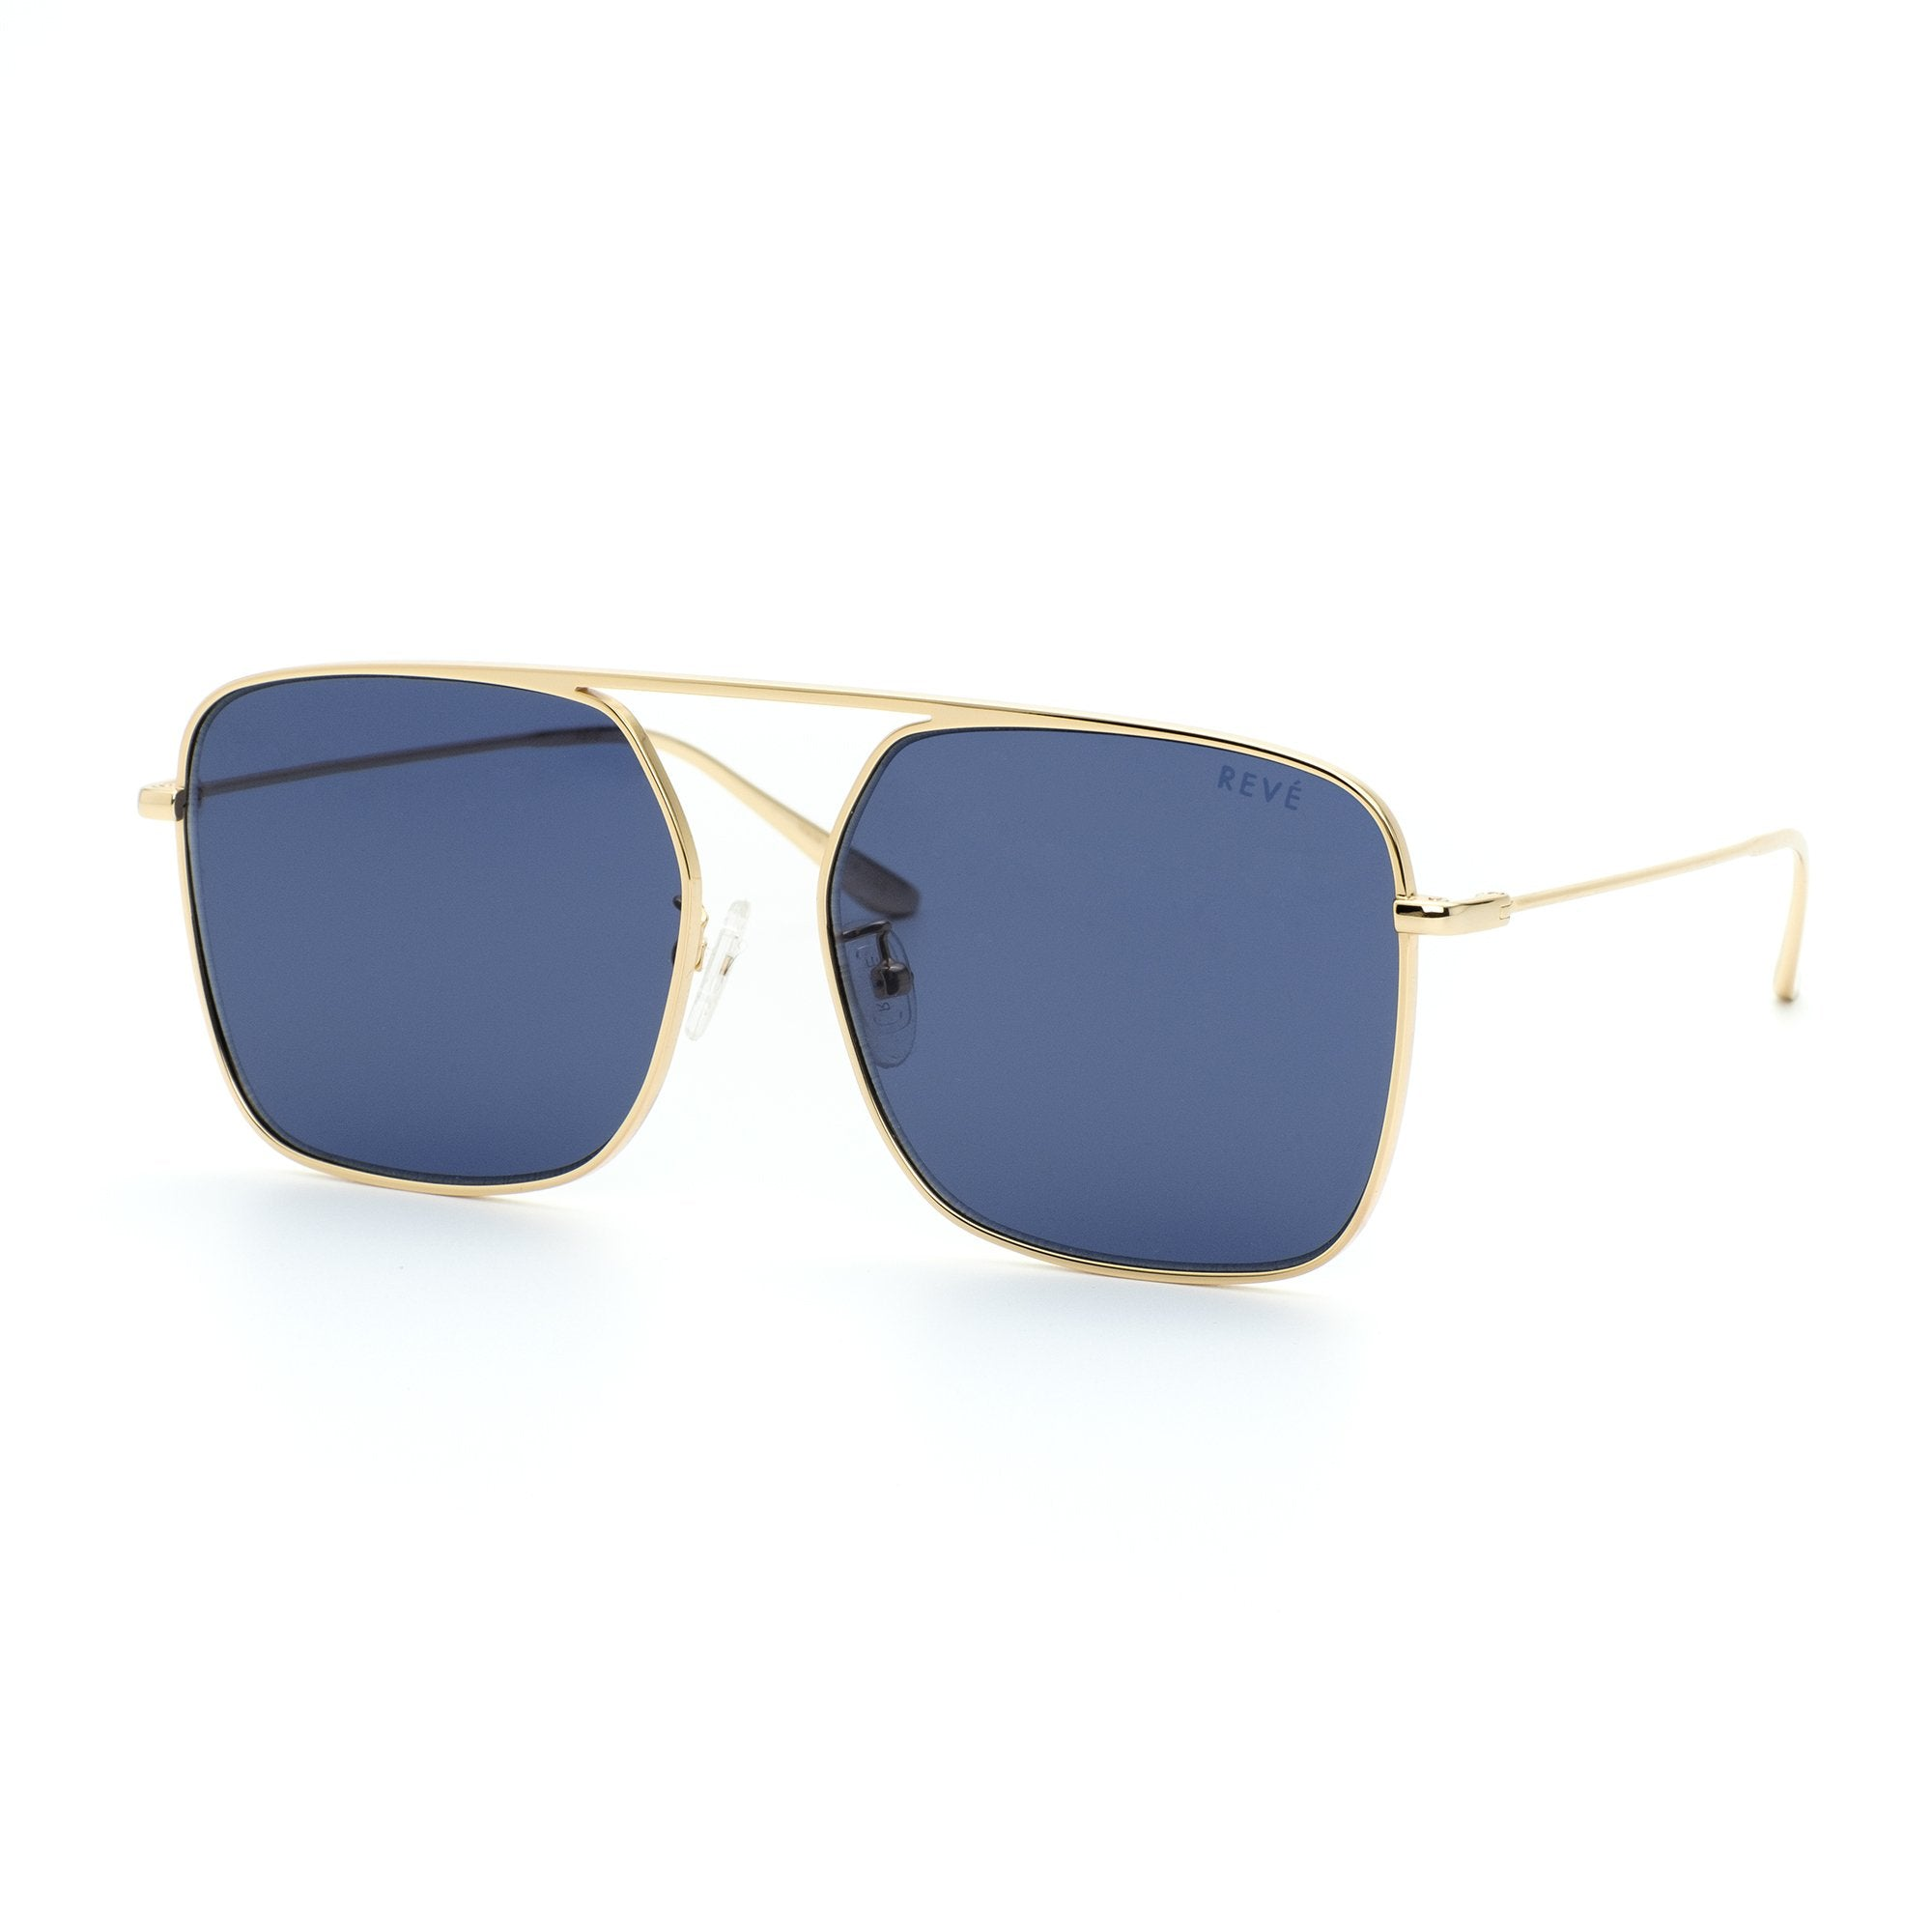 REVE by RENE BPM square aviator sunglasses in navy